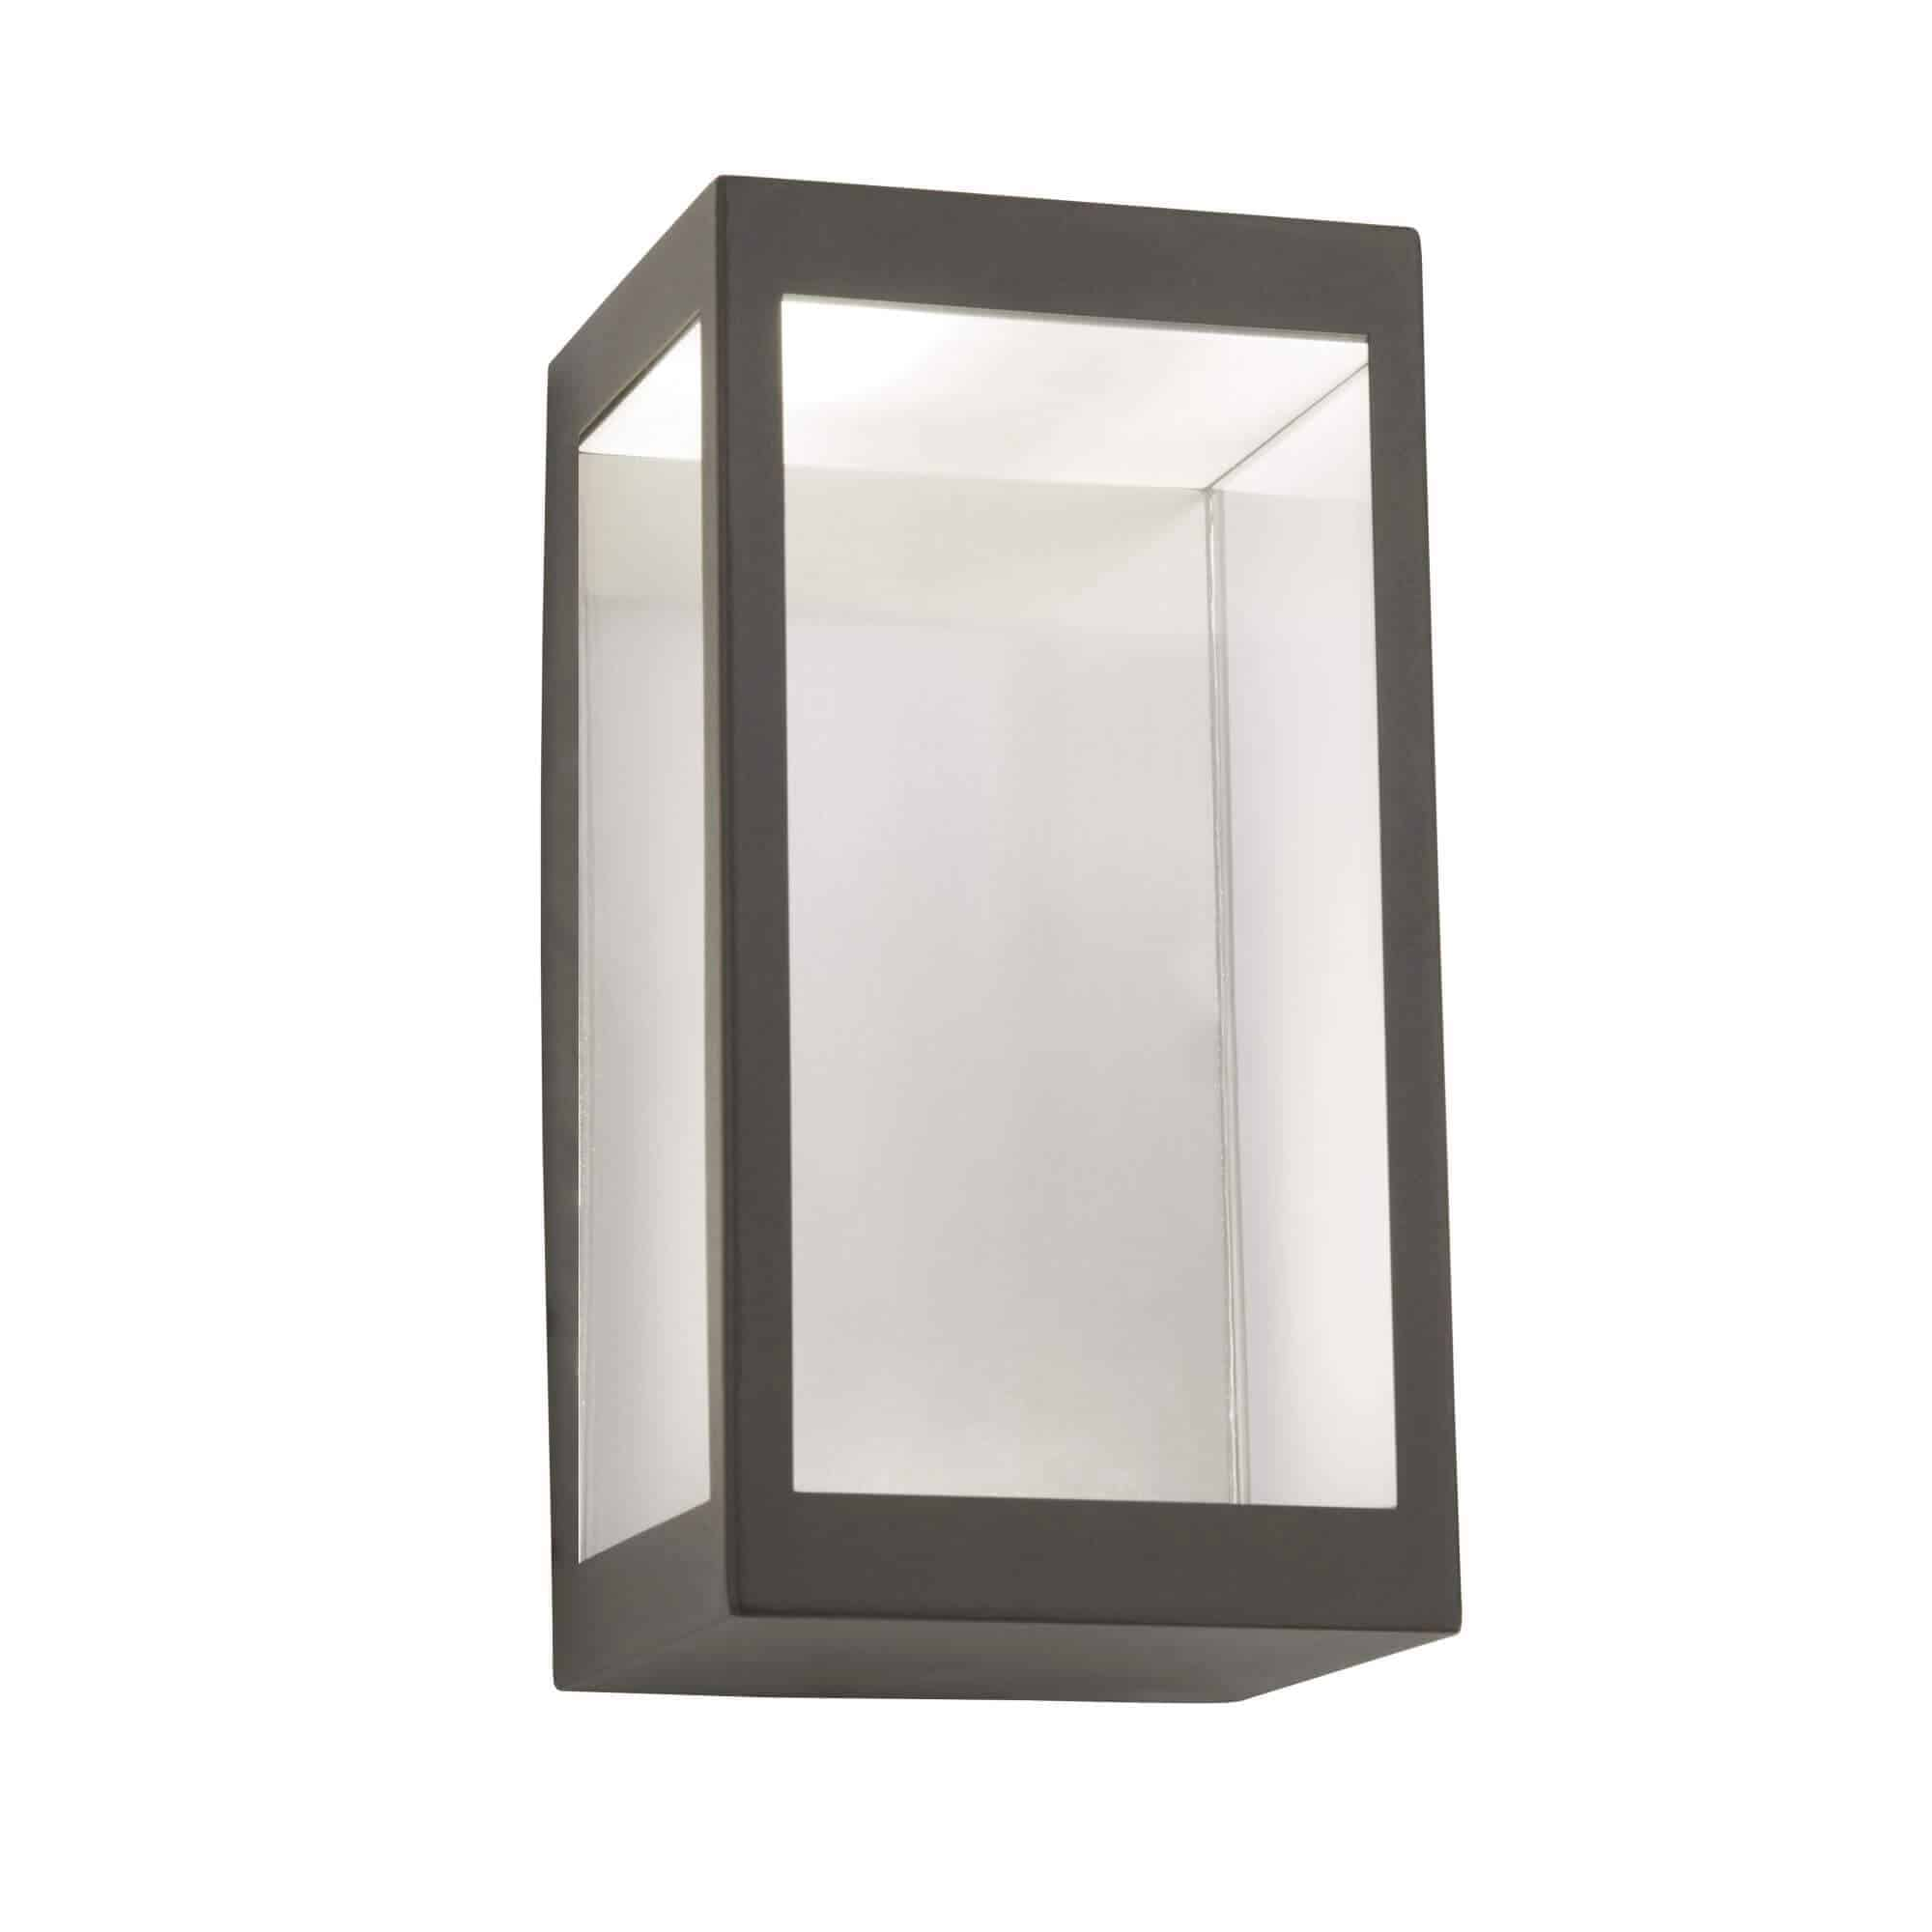 8421GY – Searchlight Box Dark Grey Outdoor LED Wall Light